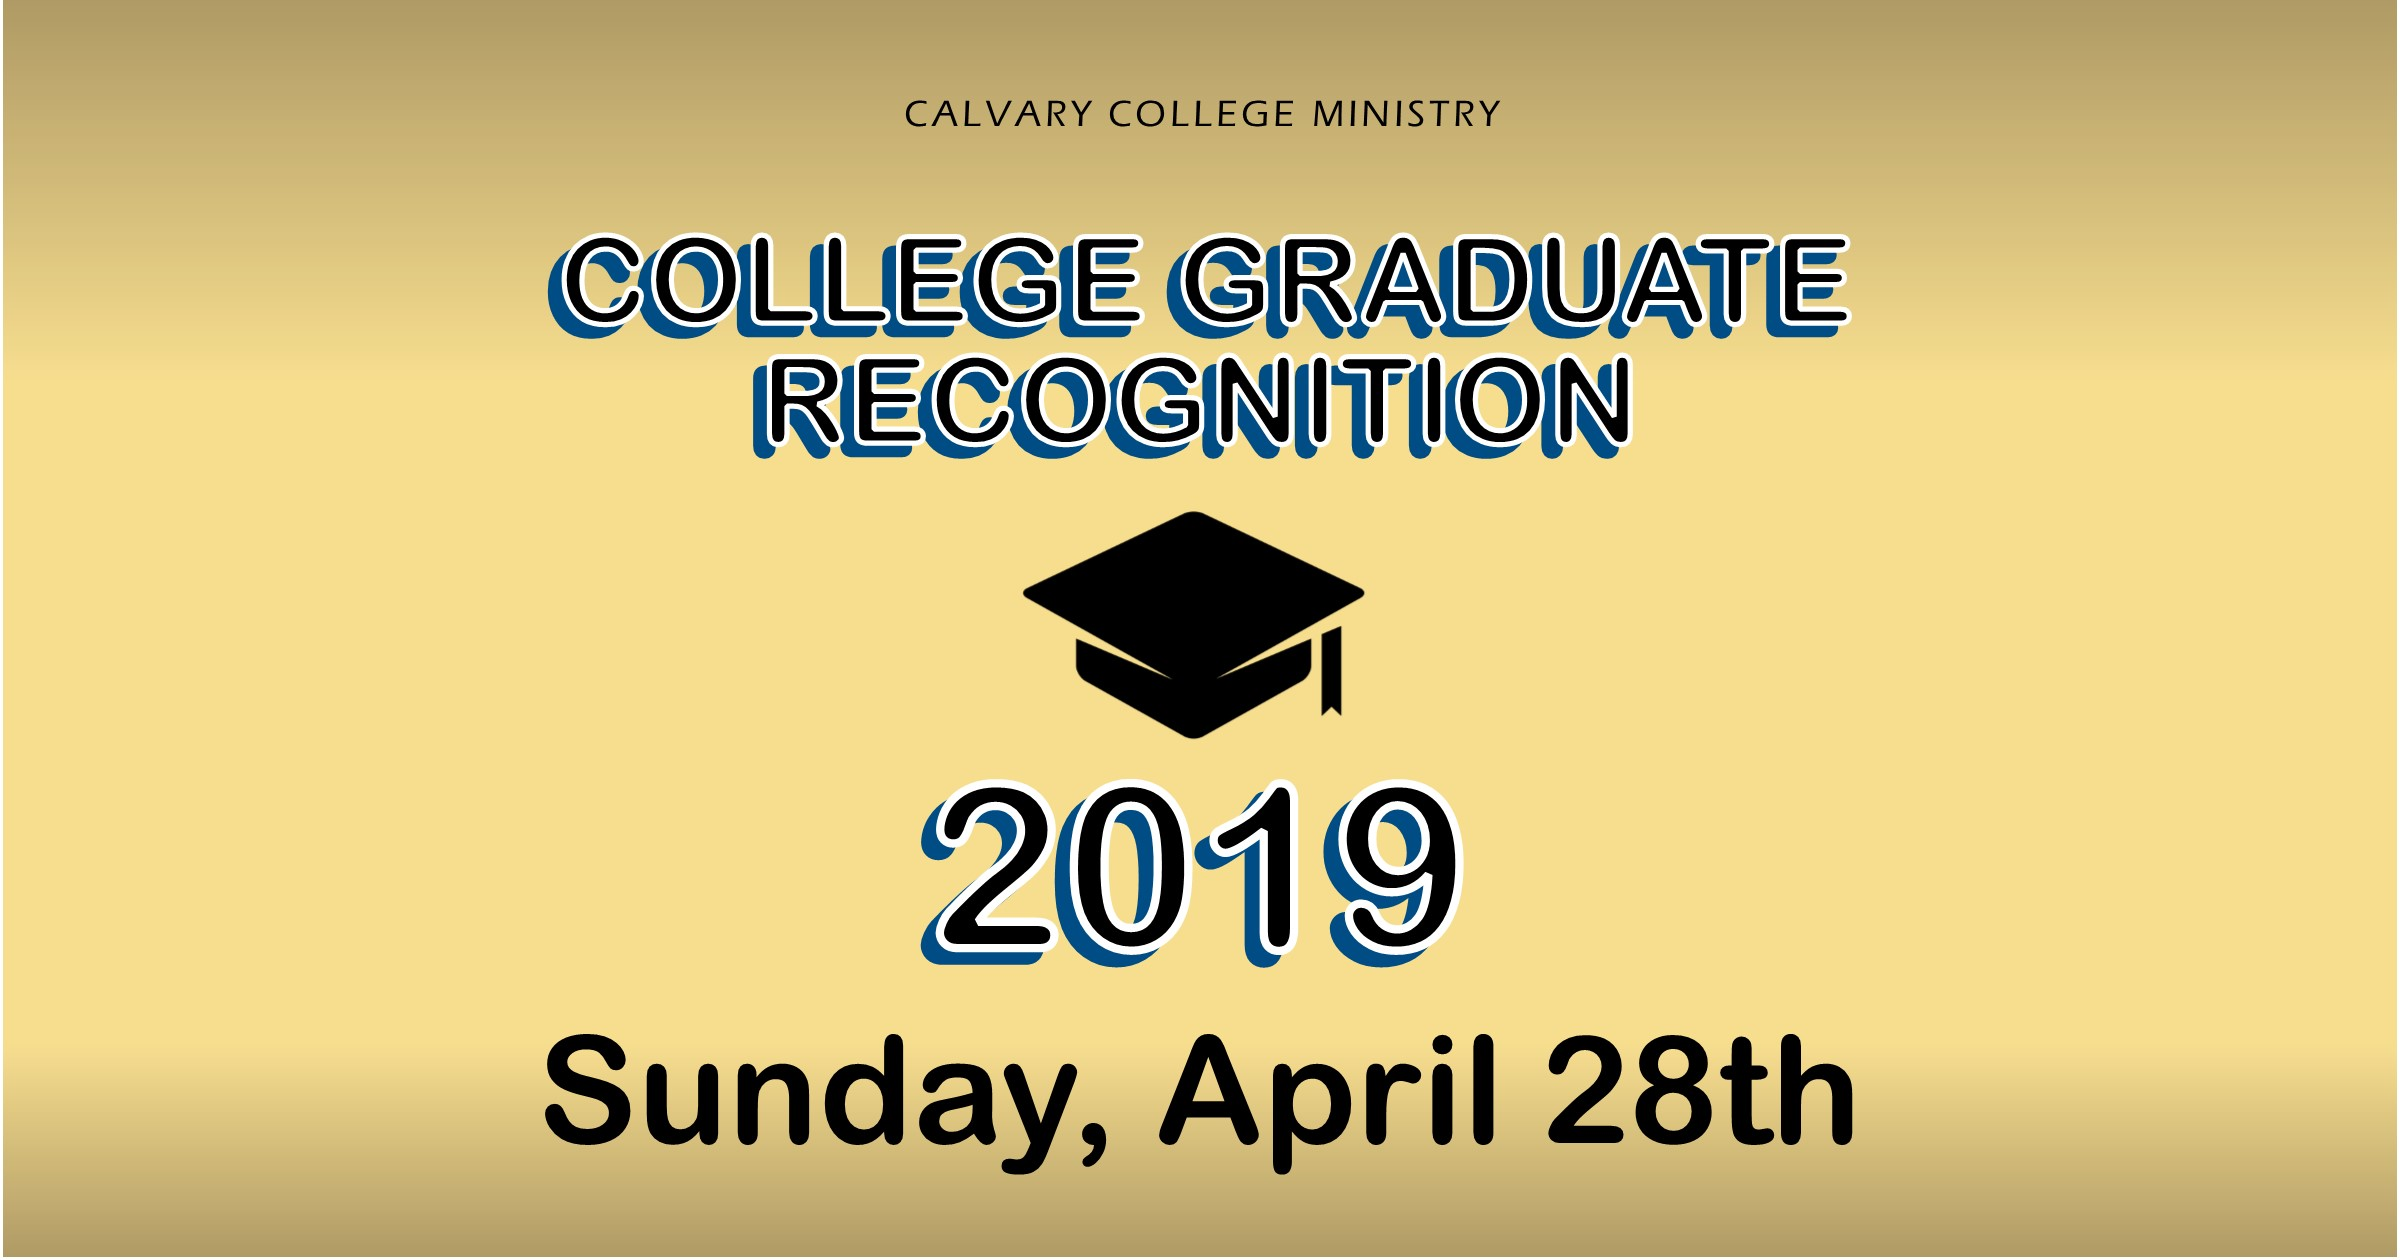 College graduation sunday 2019 fb image no deadline info.jpg